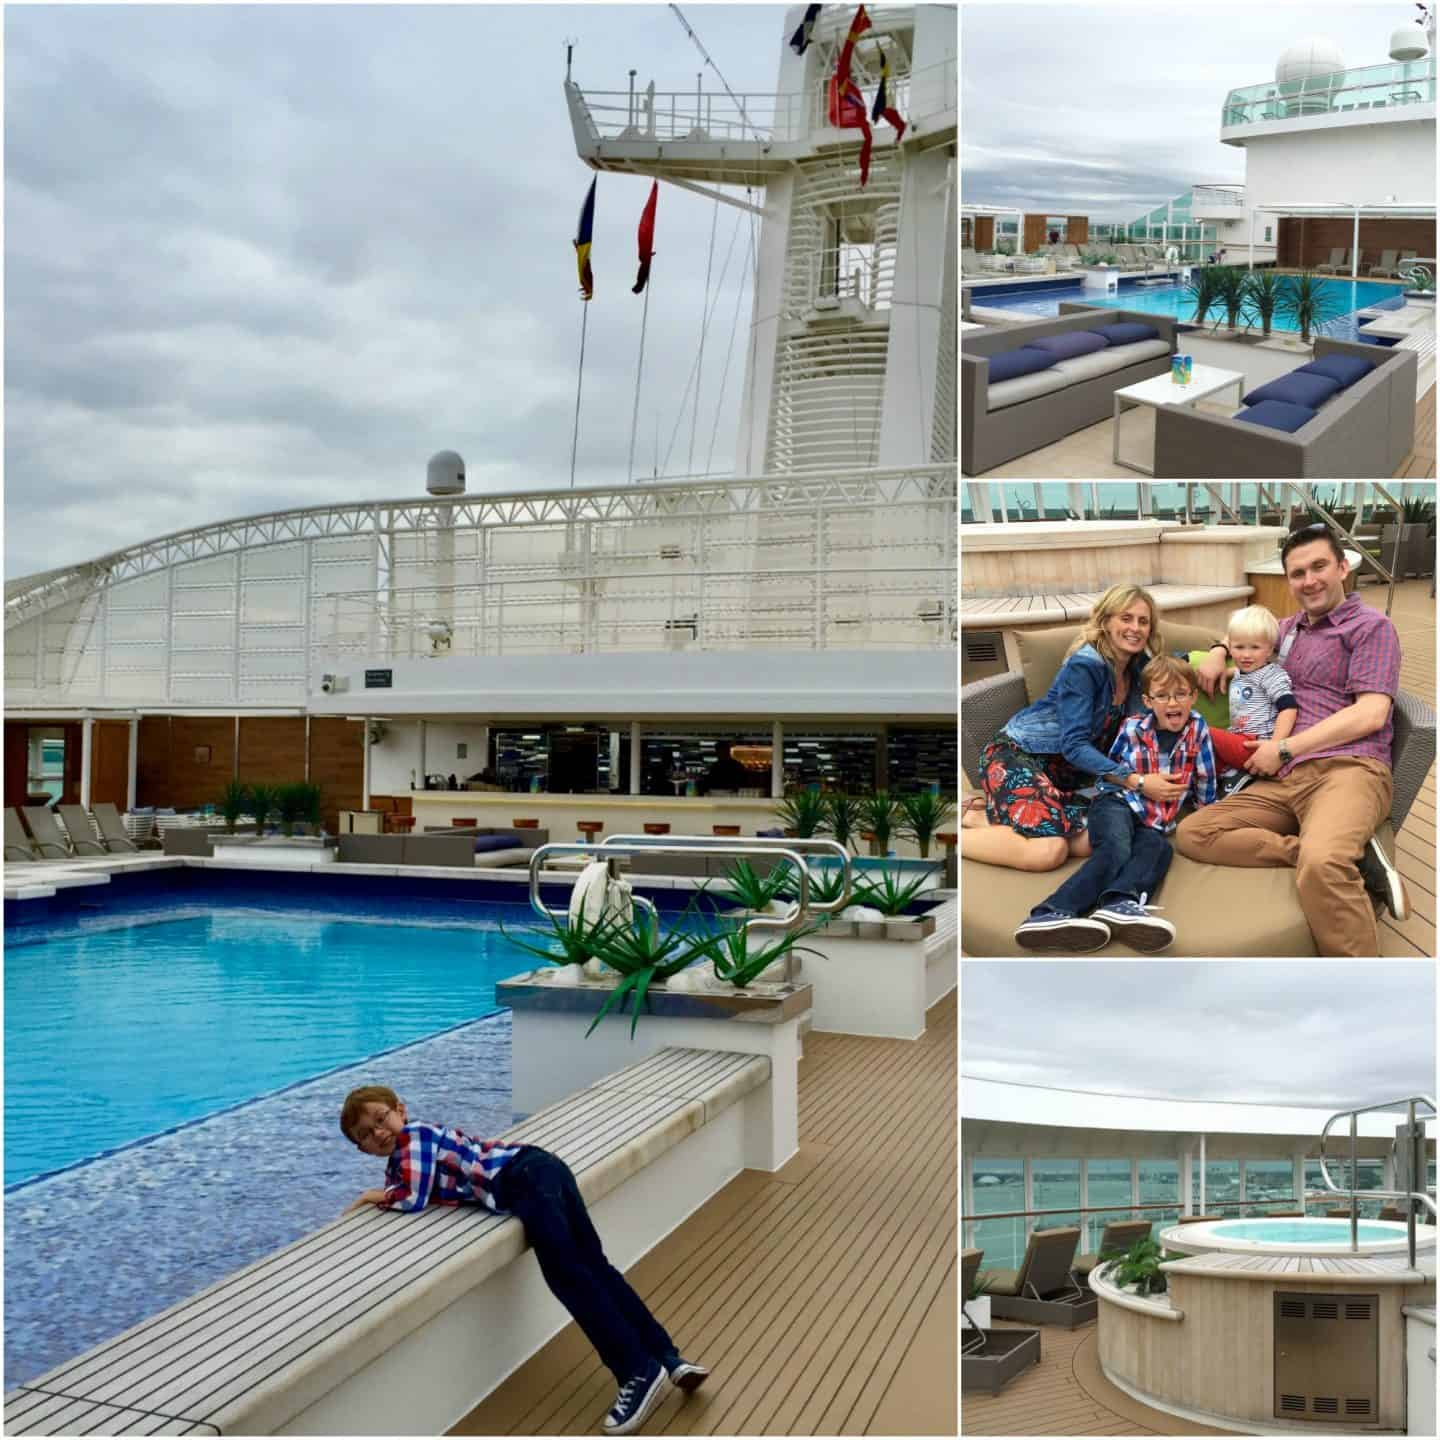 Pools on the top deck P&O Cruises Britannia